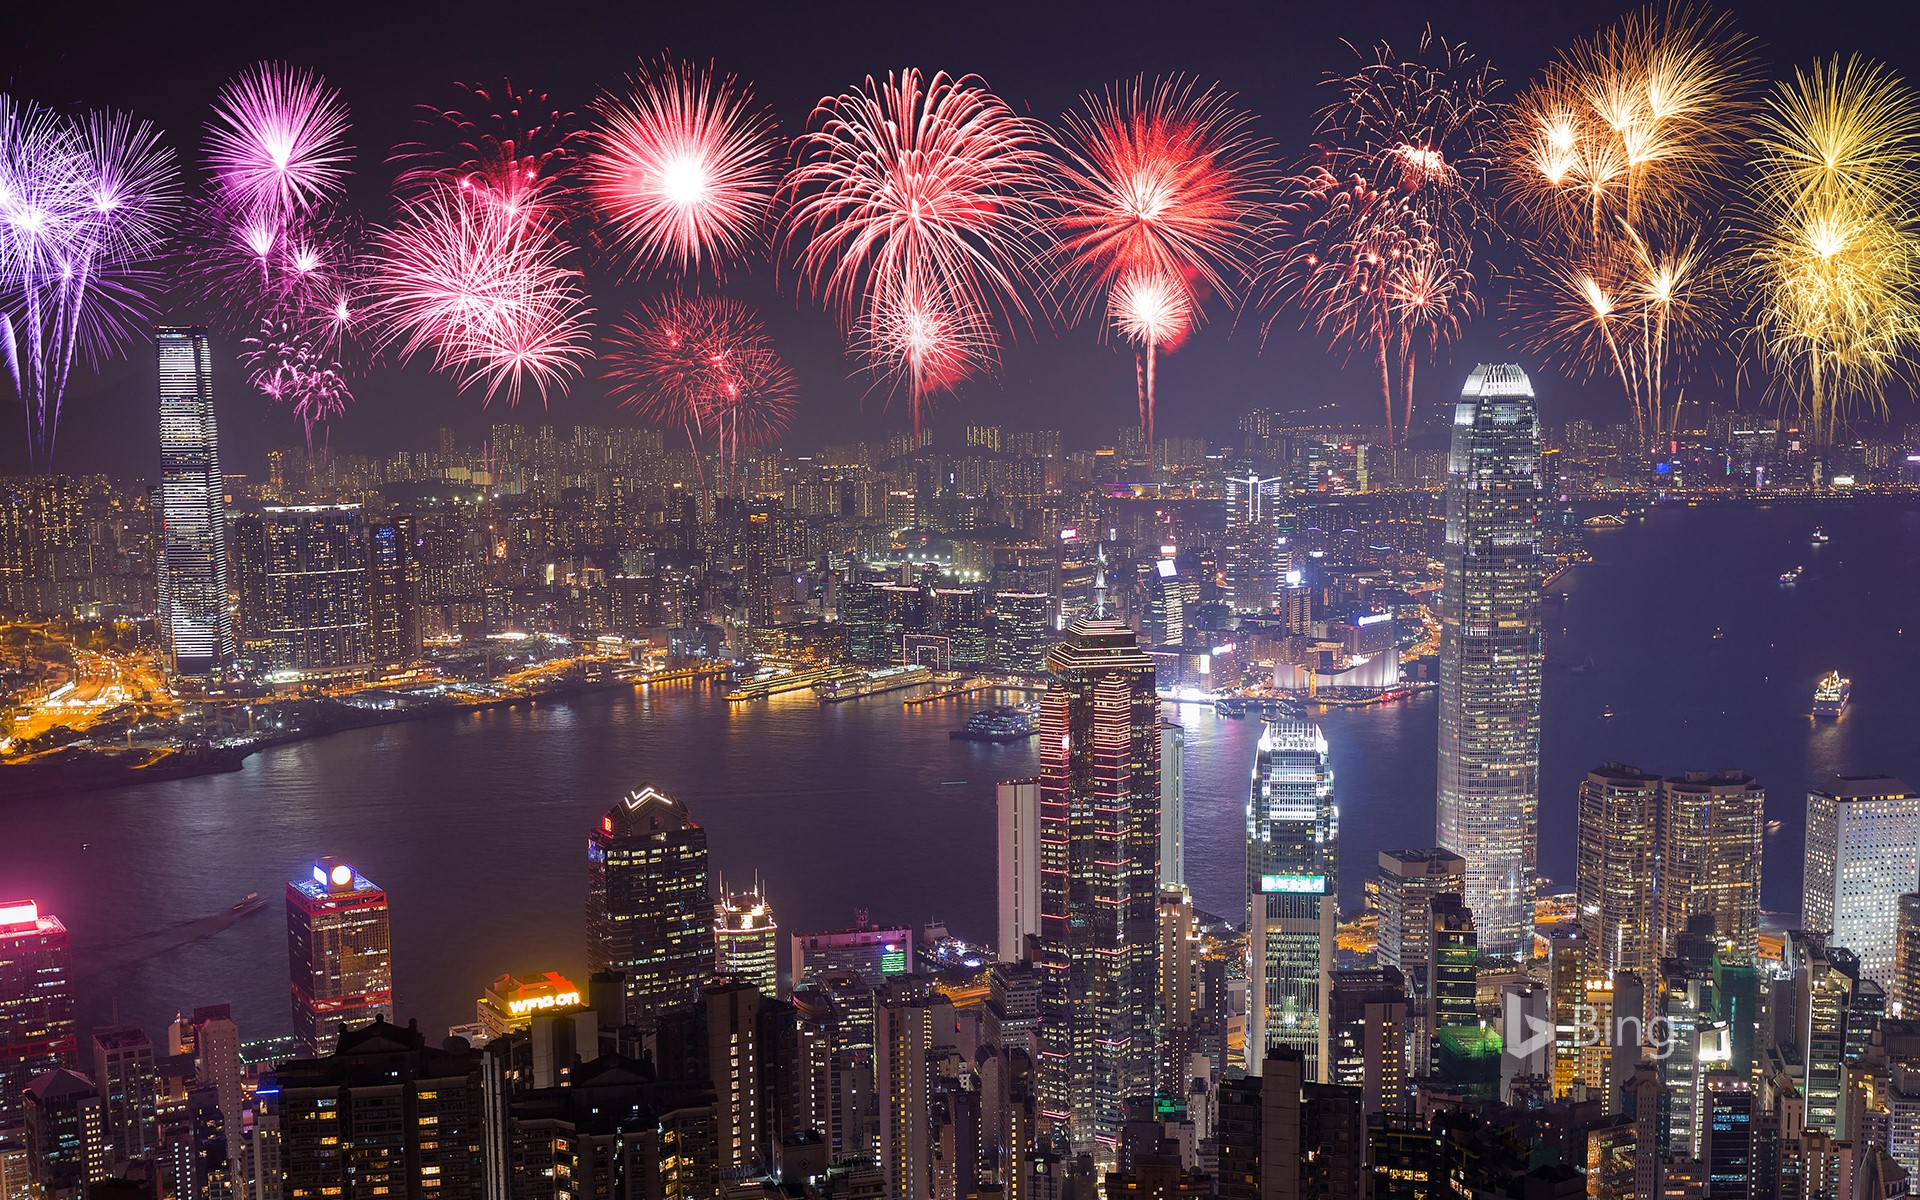 [New Year's Eve Today] Bright fireworks greet the New Year, Hong Kong, China